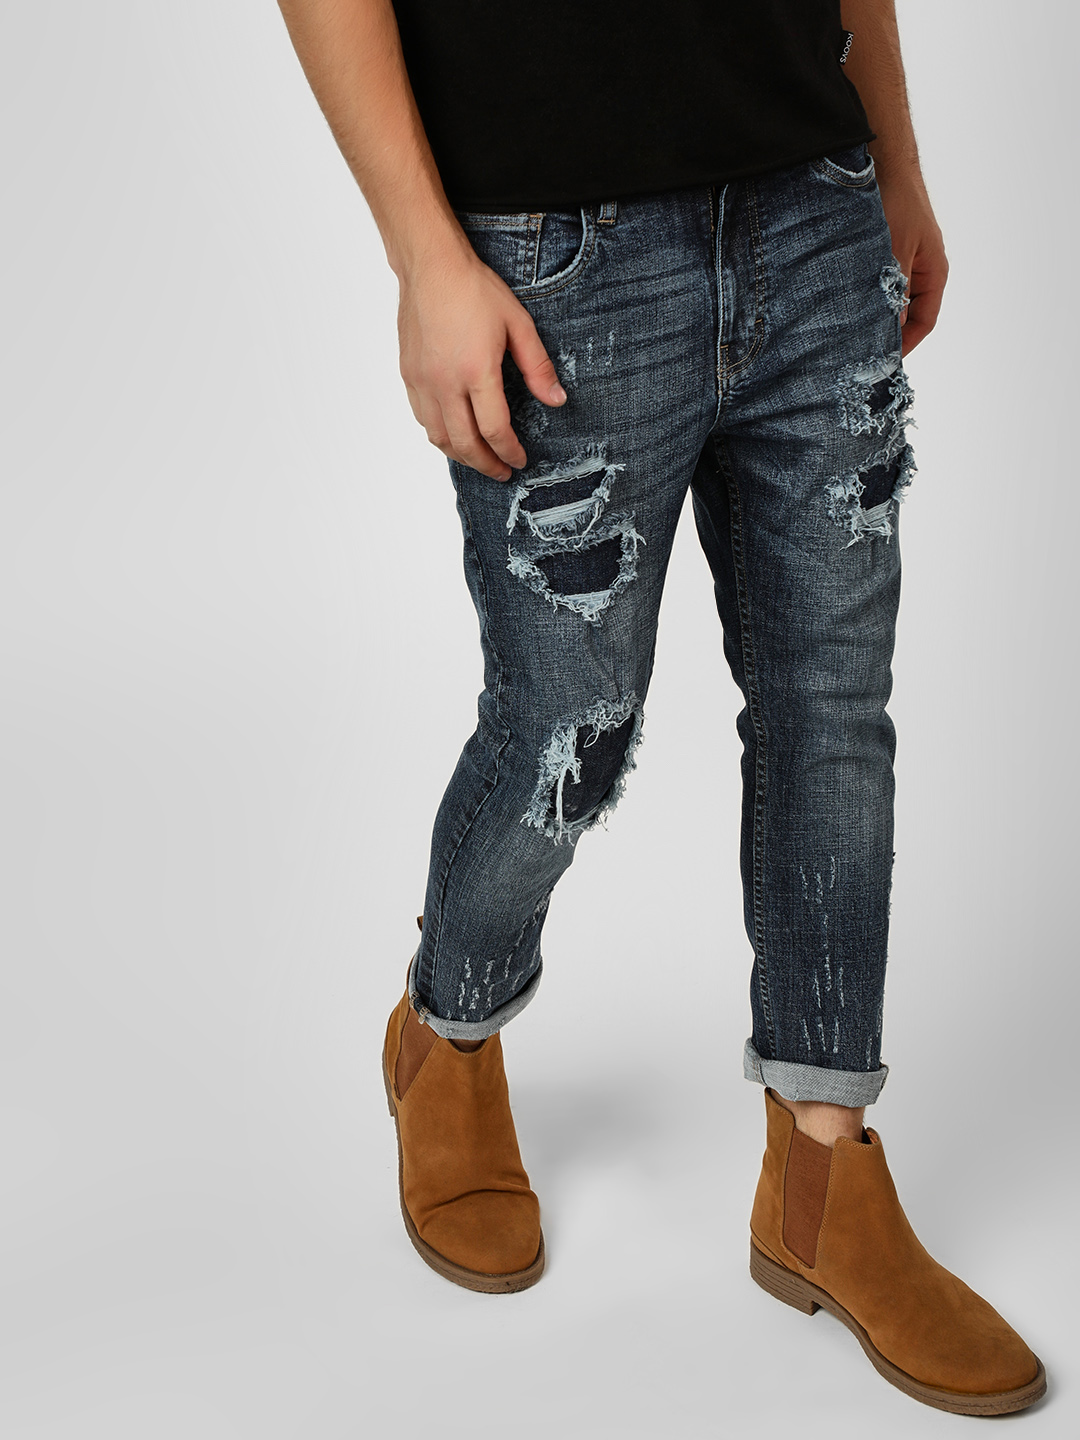 Styx & Stones Blue Highly Distressed Slim Fit Jeans 1